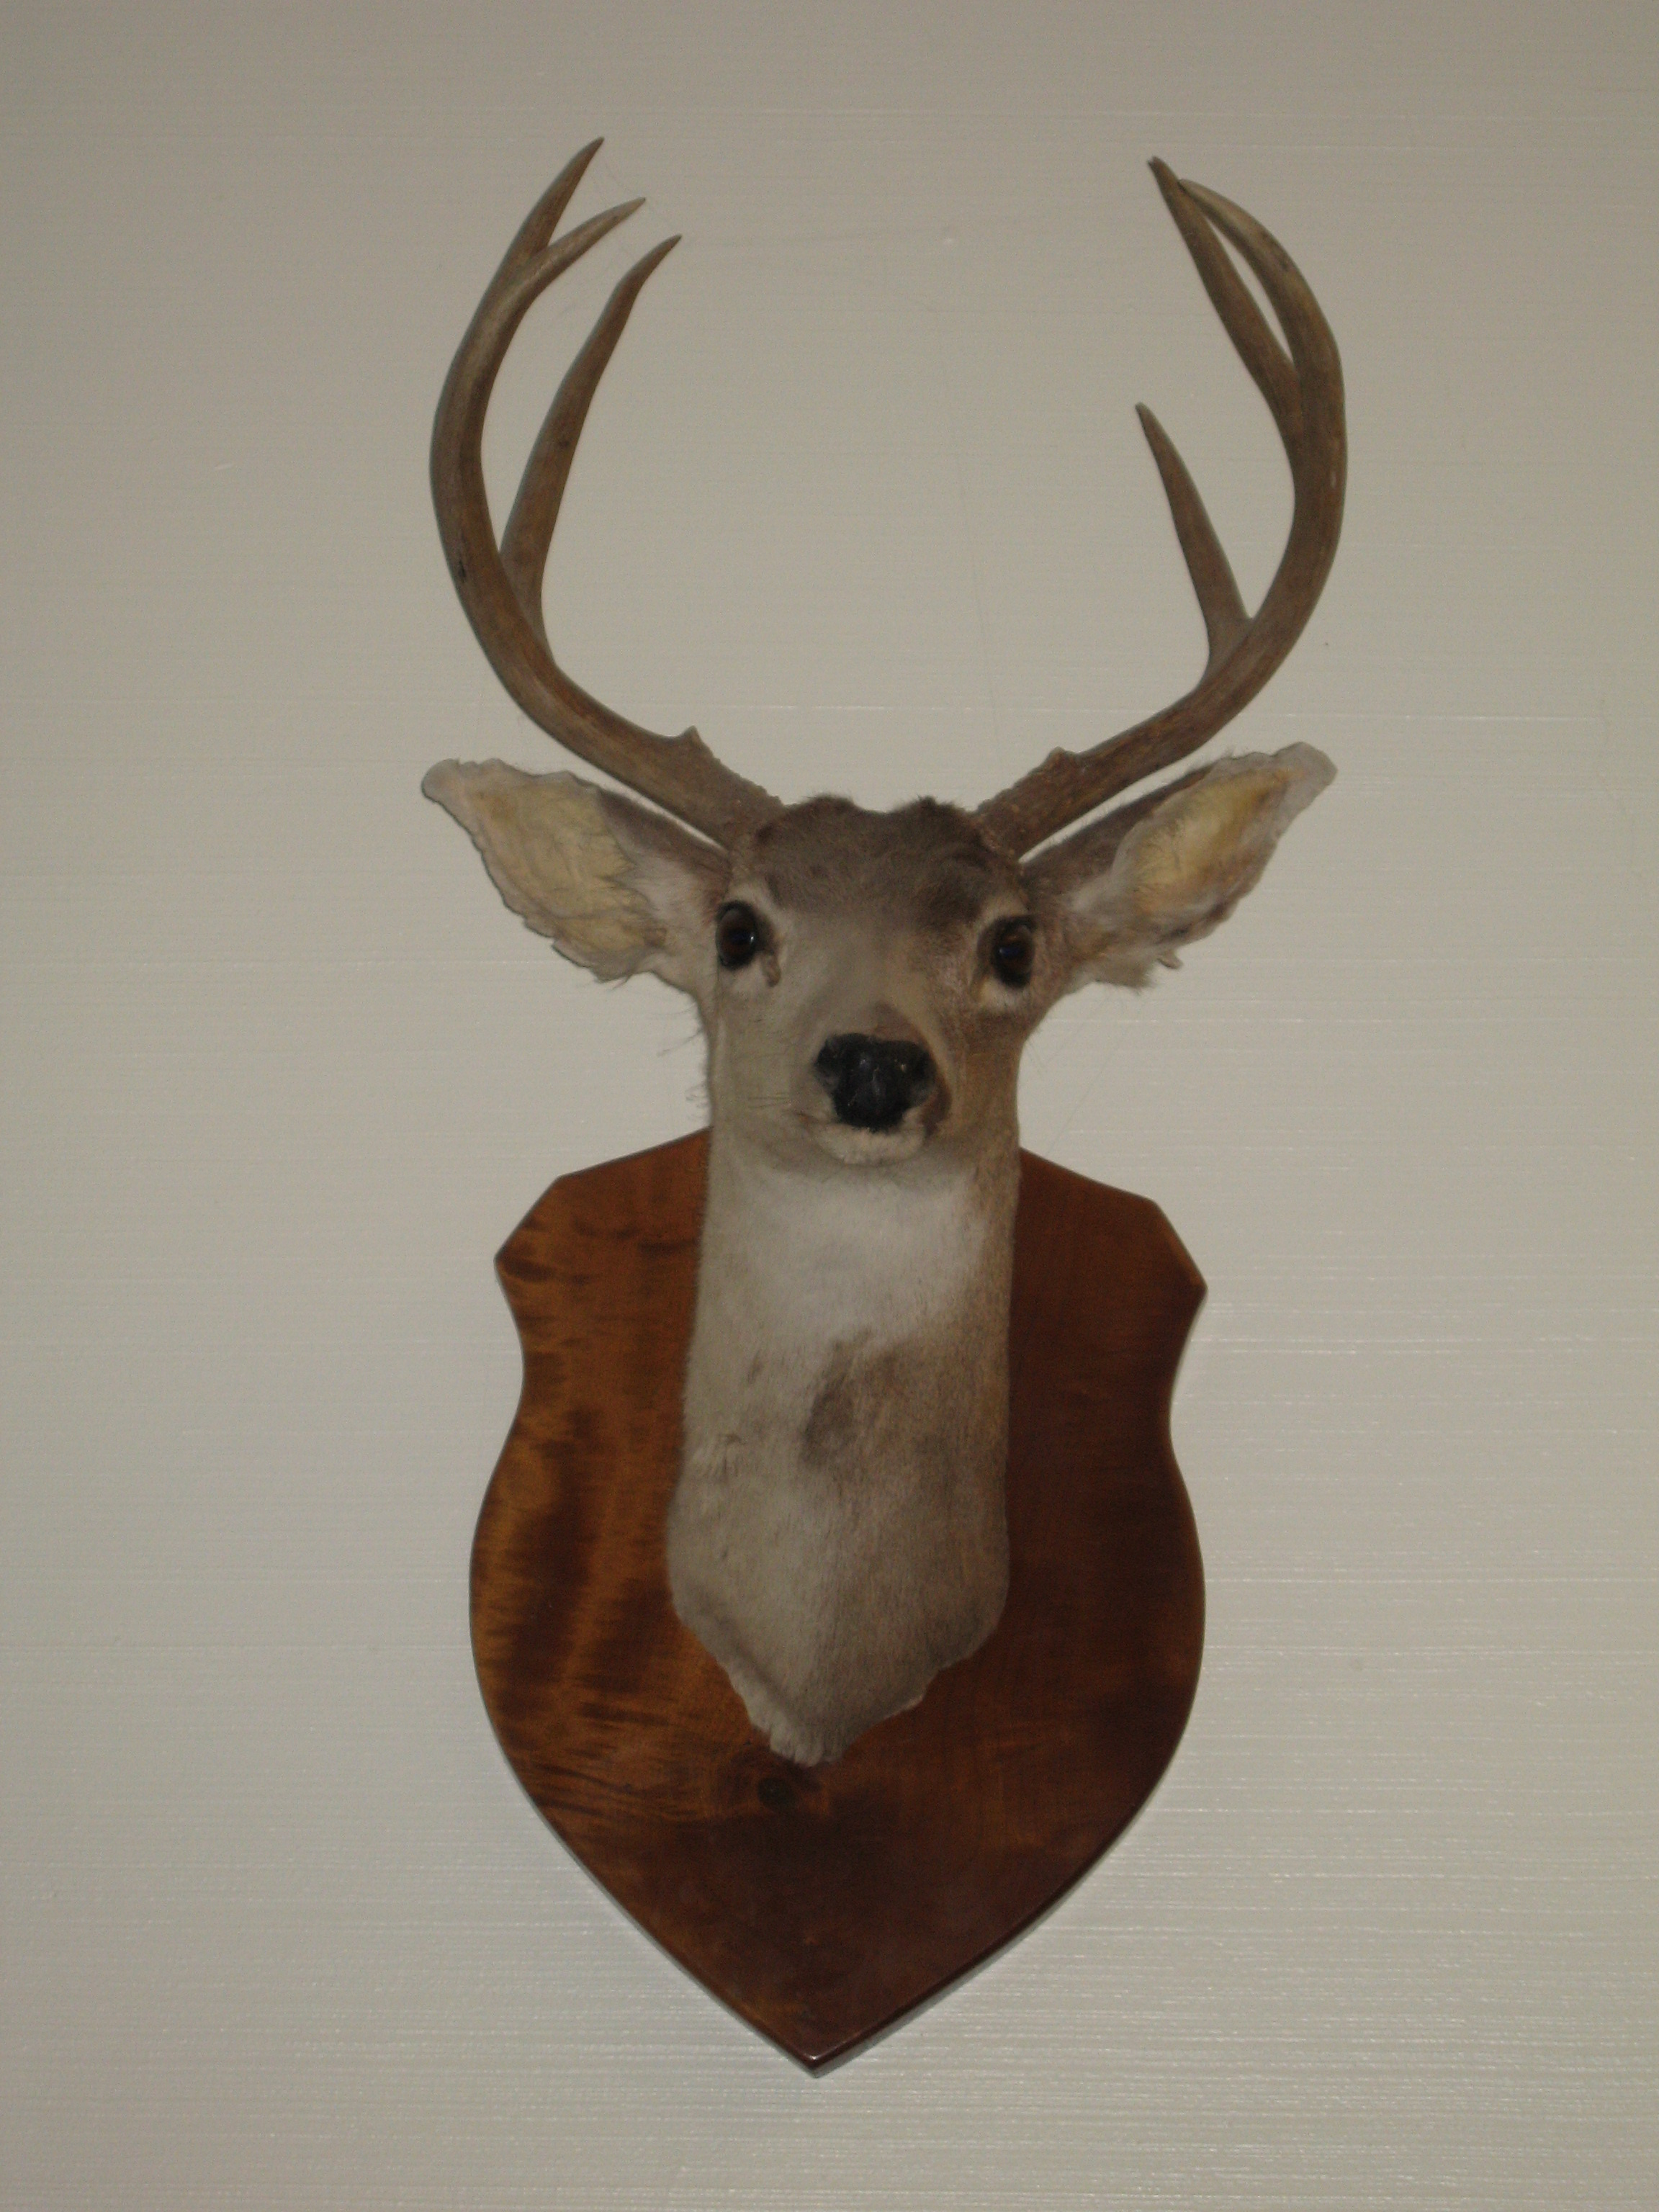 How to make stag antler decorations ehow uk for Antlers for decoration